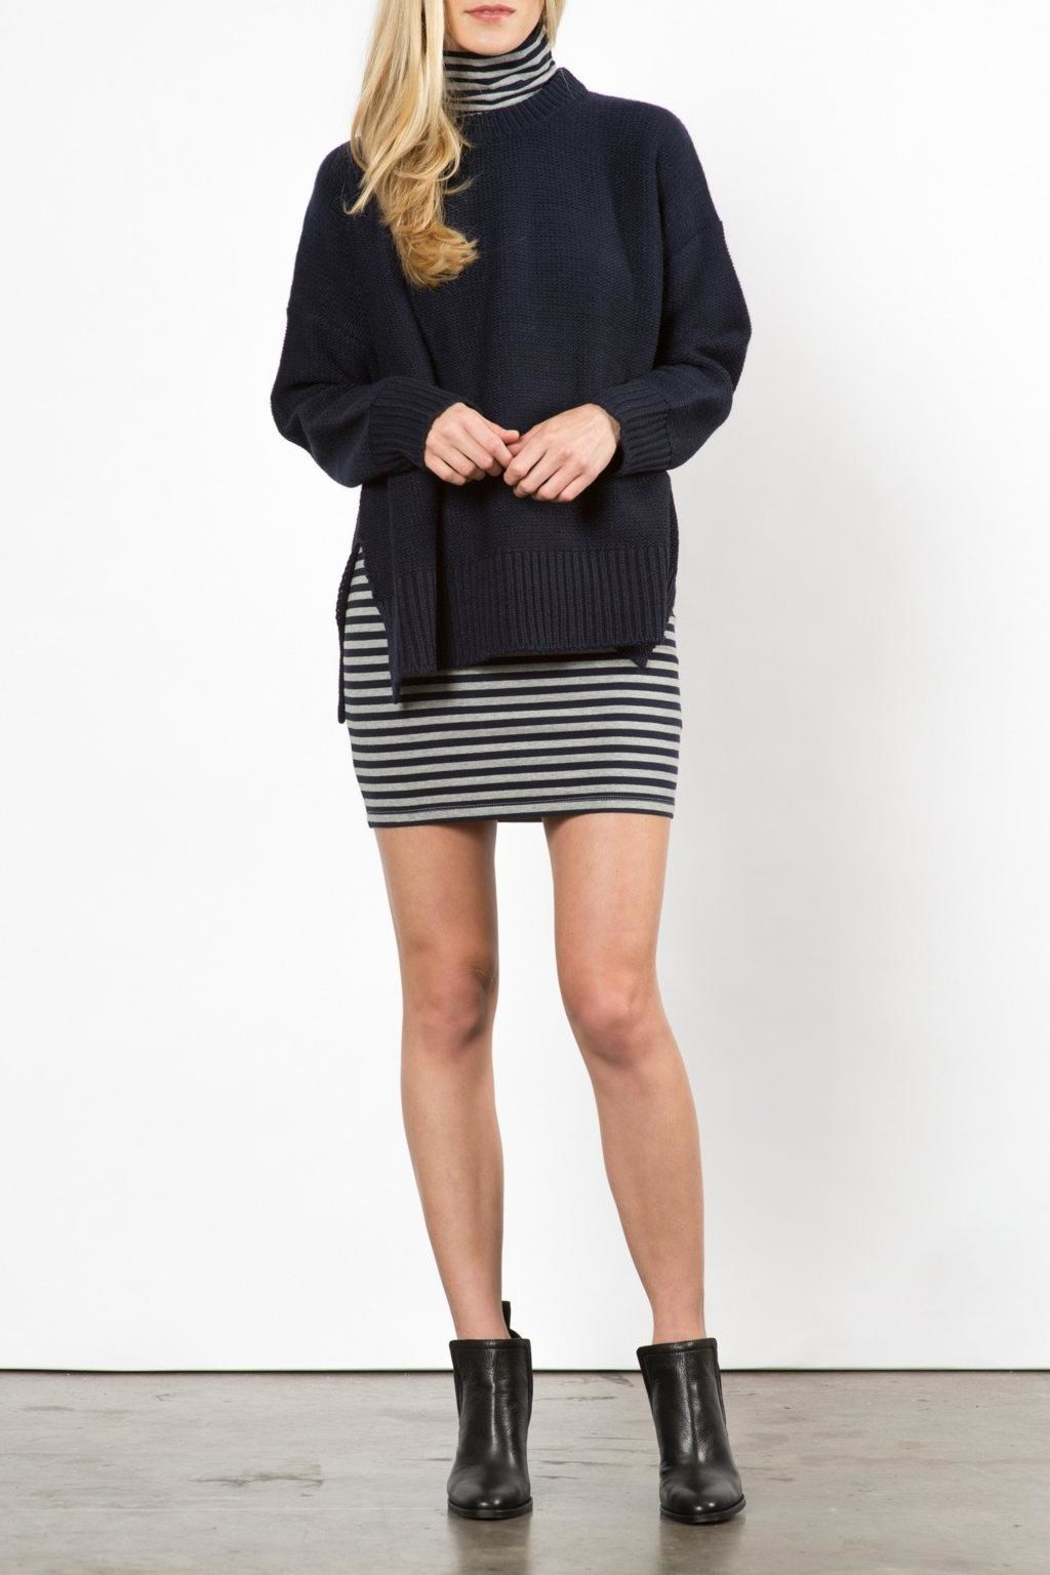 Knot Sisters Neilson Navy Sweater - Main Image